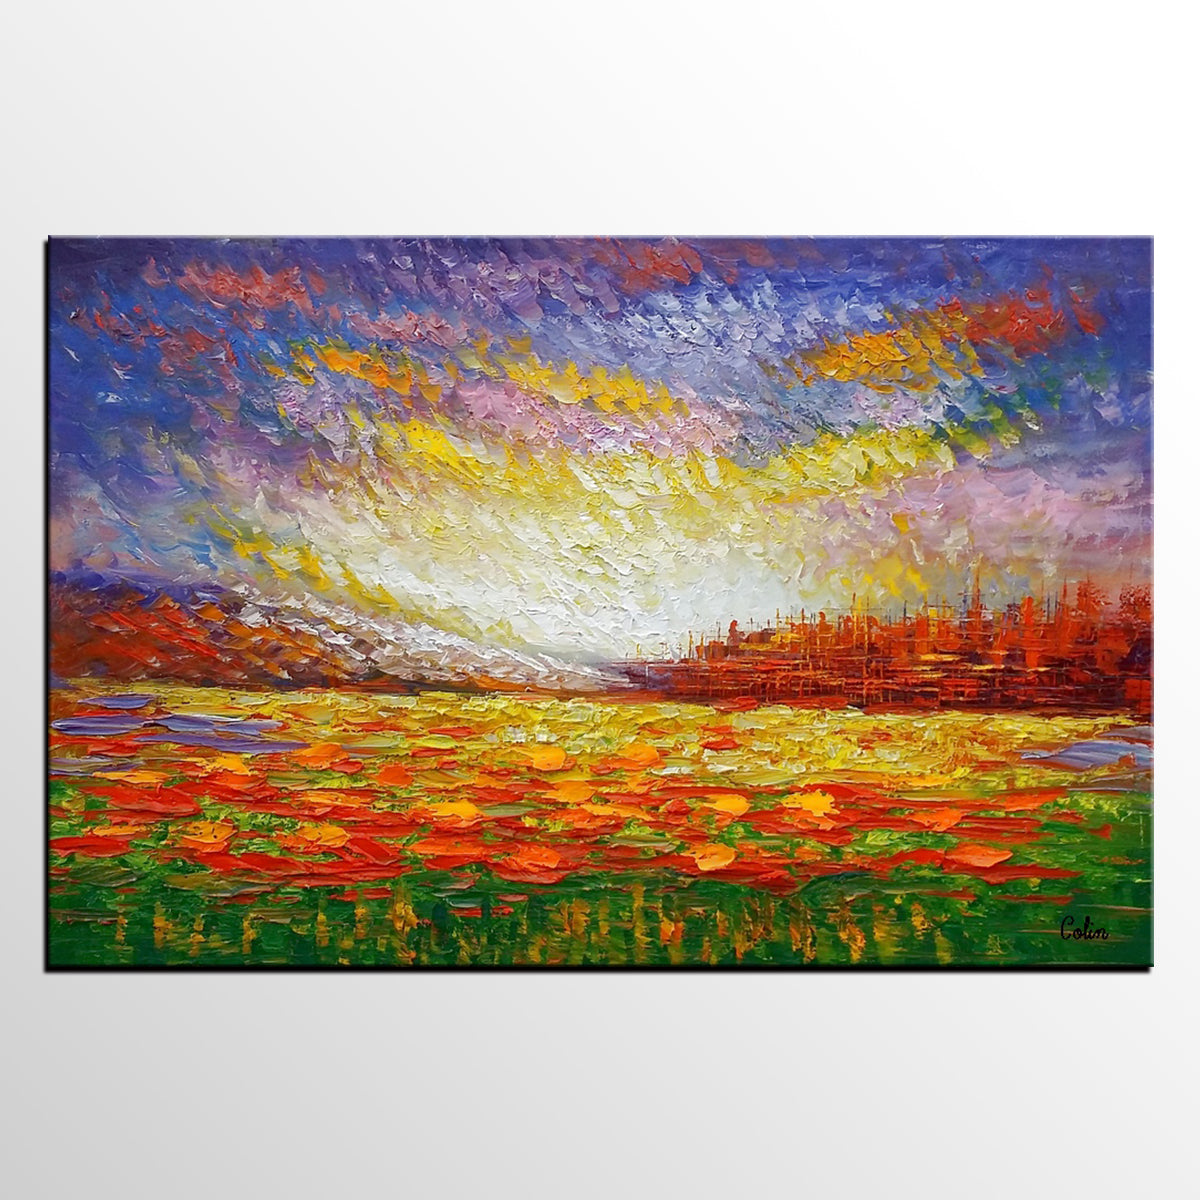 Oil Painting, Abstract Painting, Large Art, Abstract Landscape Painting, Canvas Art, Living Room Wall Art, Canvas Painting, Impasto Art - artworkcanvas